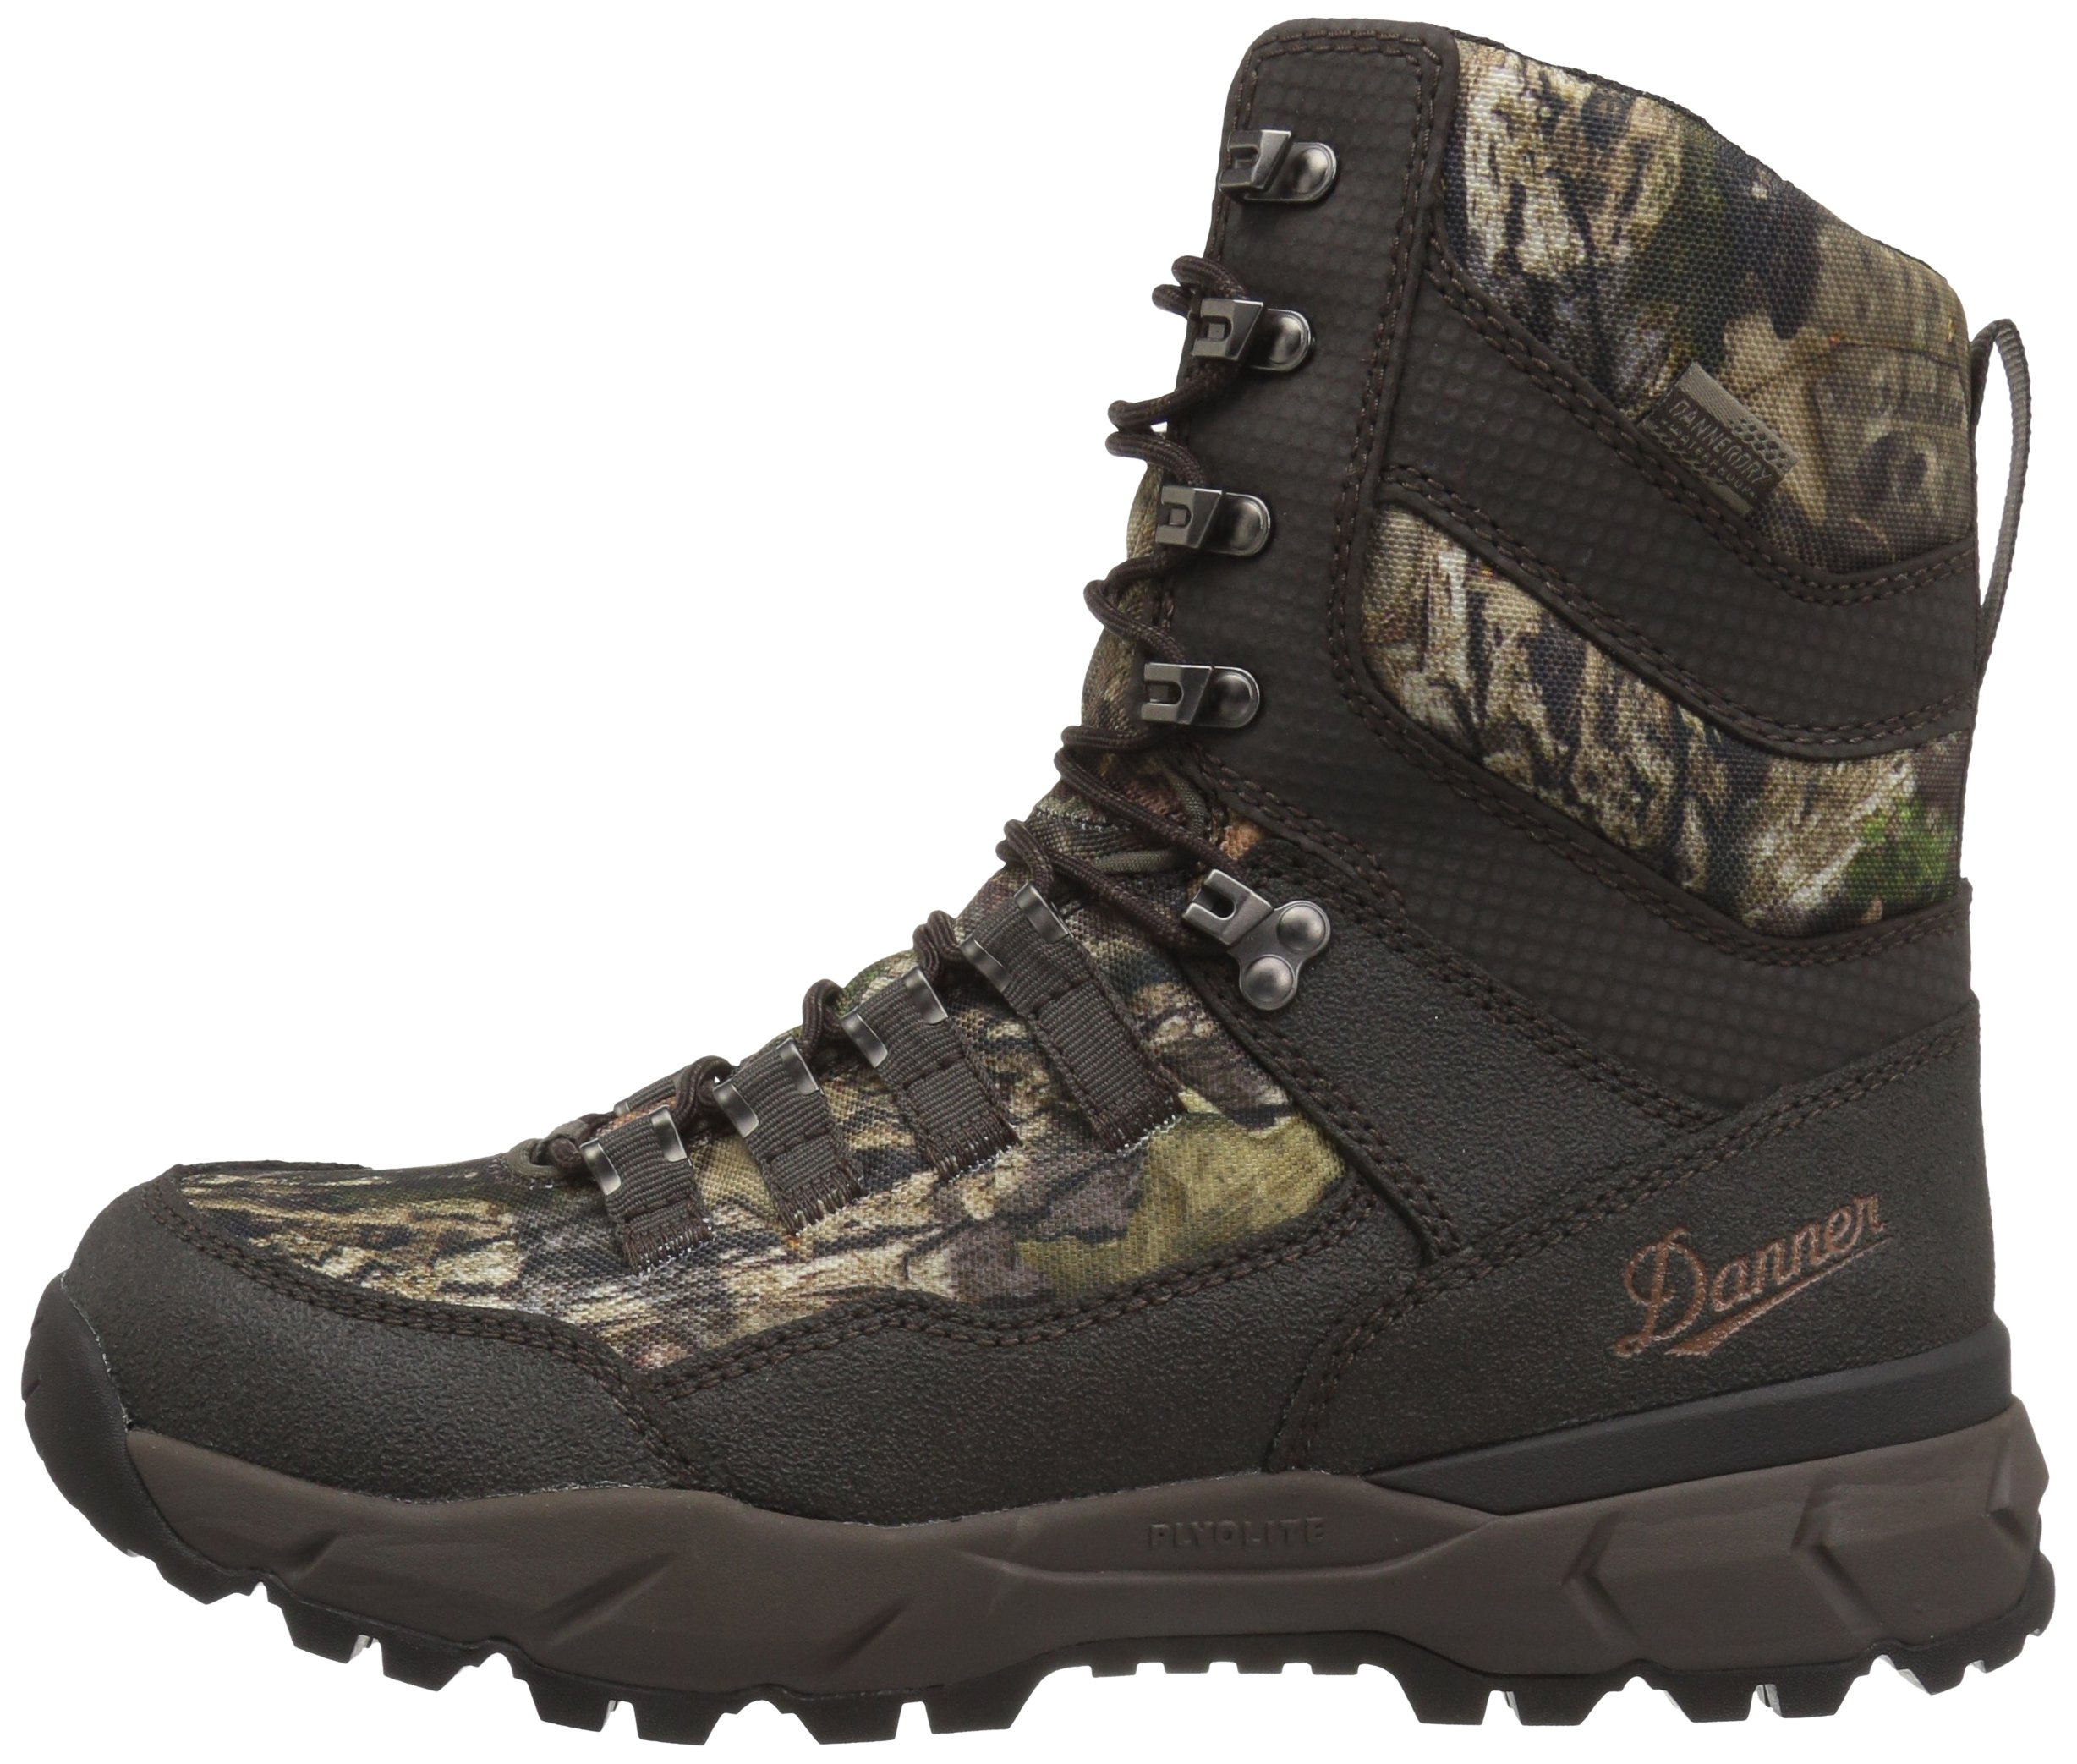 Danner Men's Vital Insulated 400G Hunting Shoes, Mossy Oak Break Up Country, 8.5 D US by Danner (Image #5)